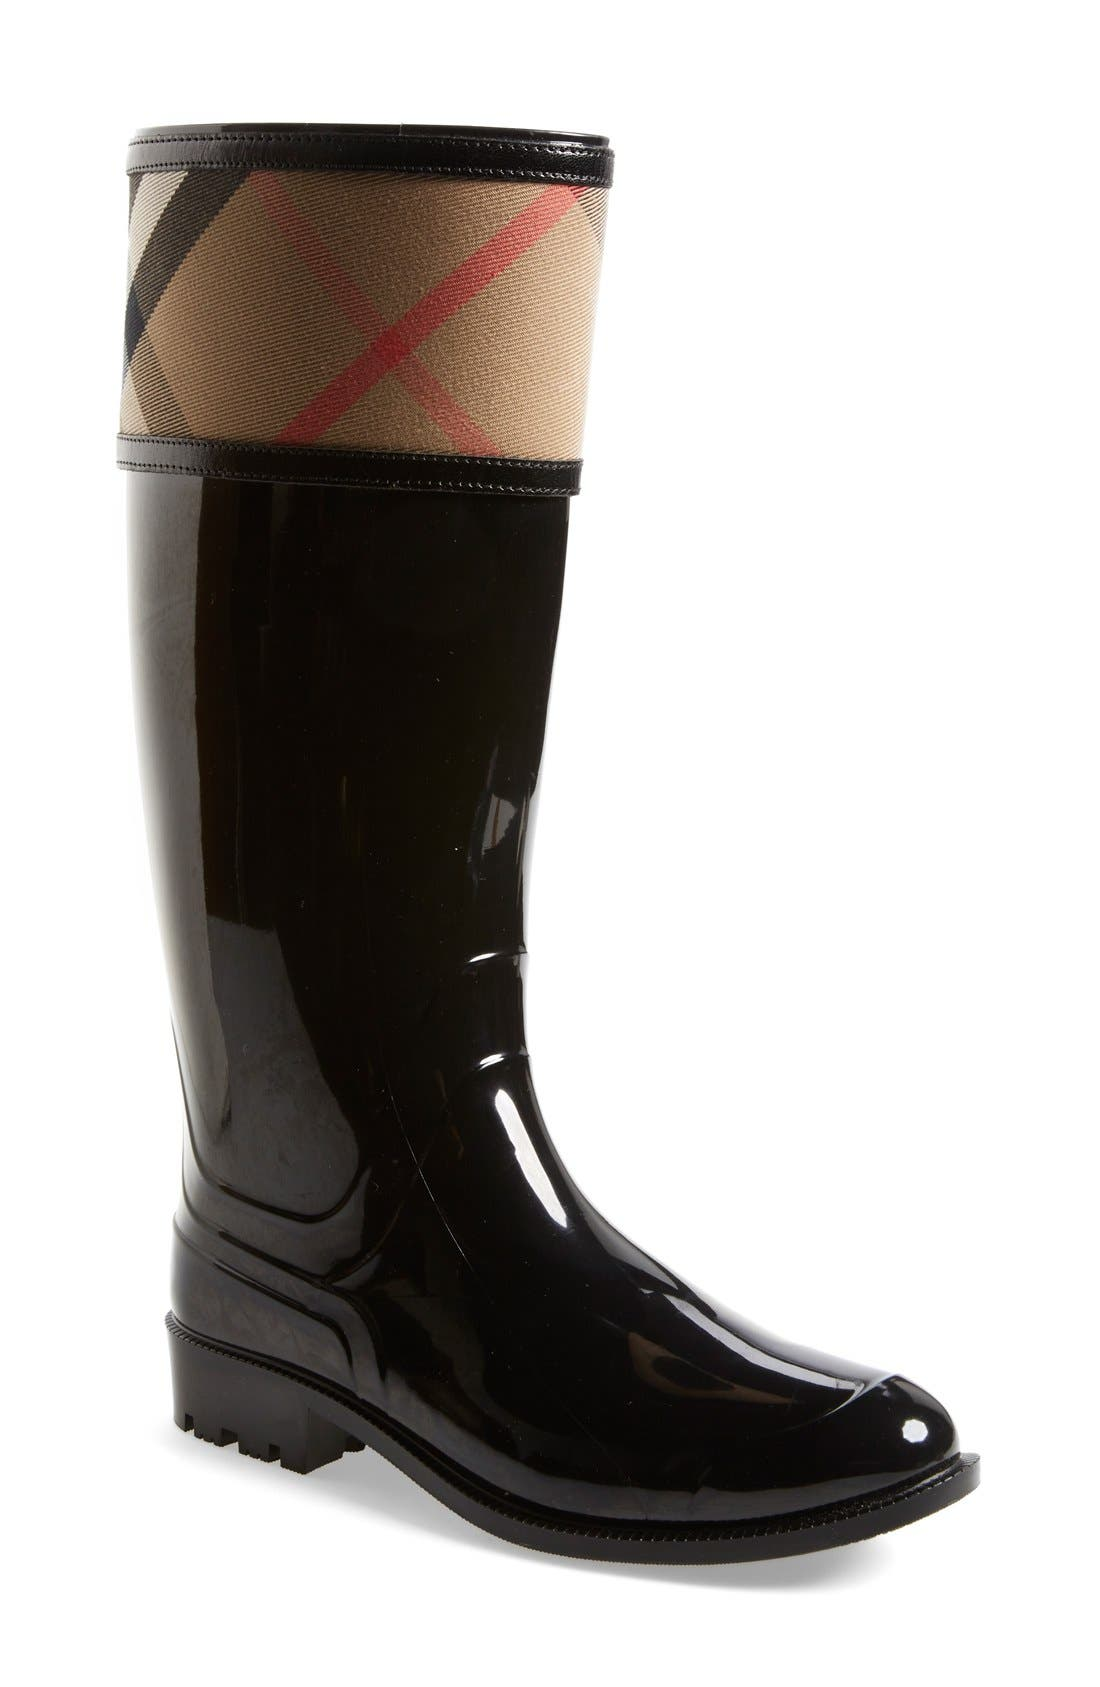 Crosshill Rain Boot,                             Main thumbnail 1, color,                             001